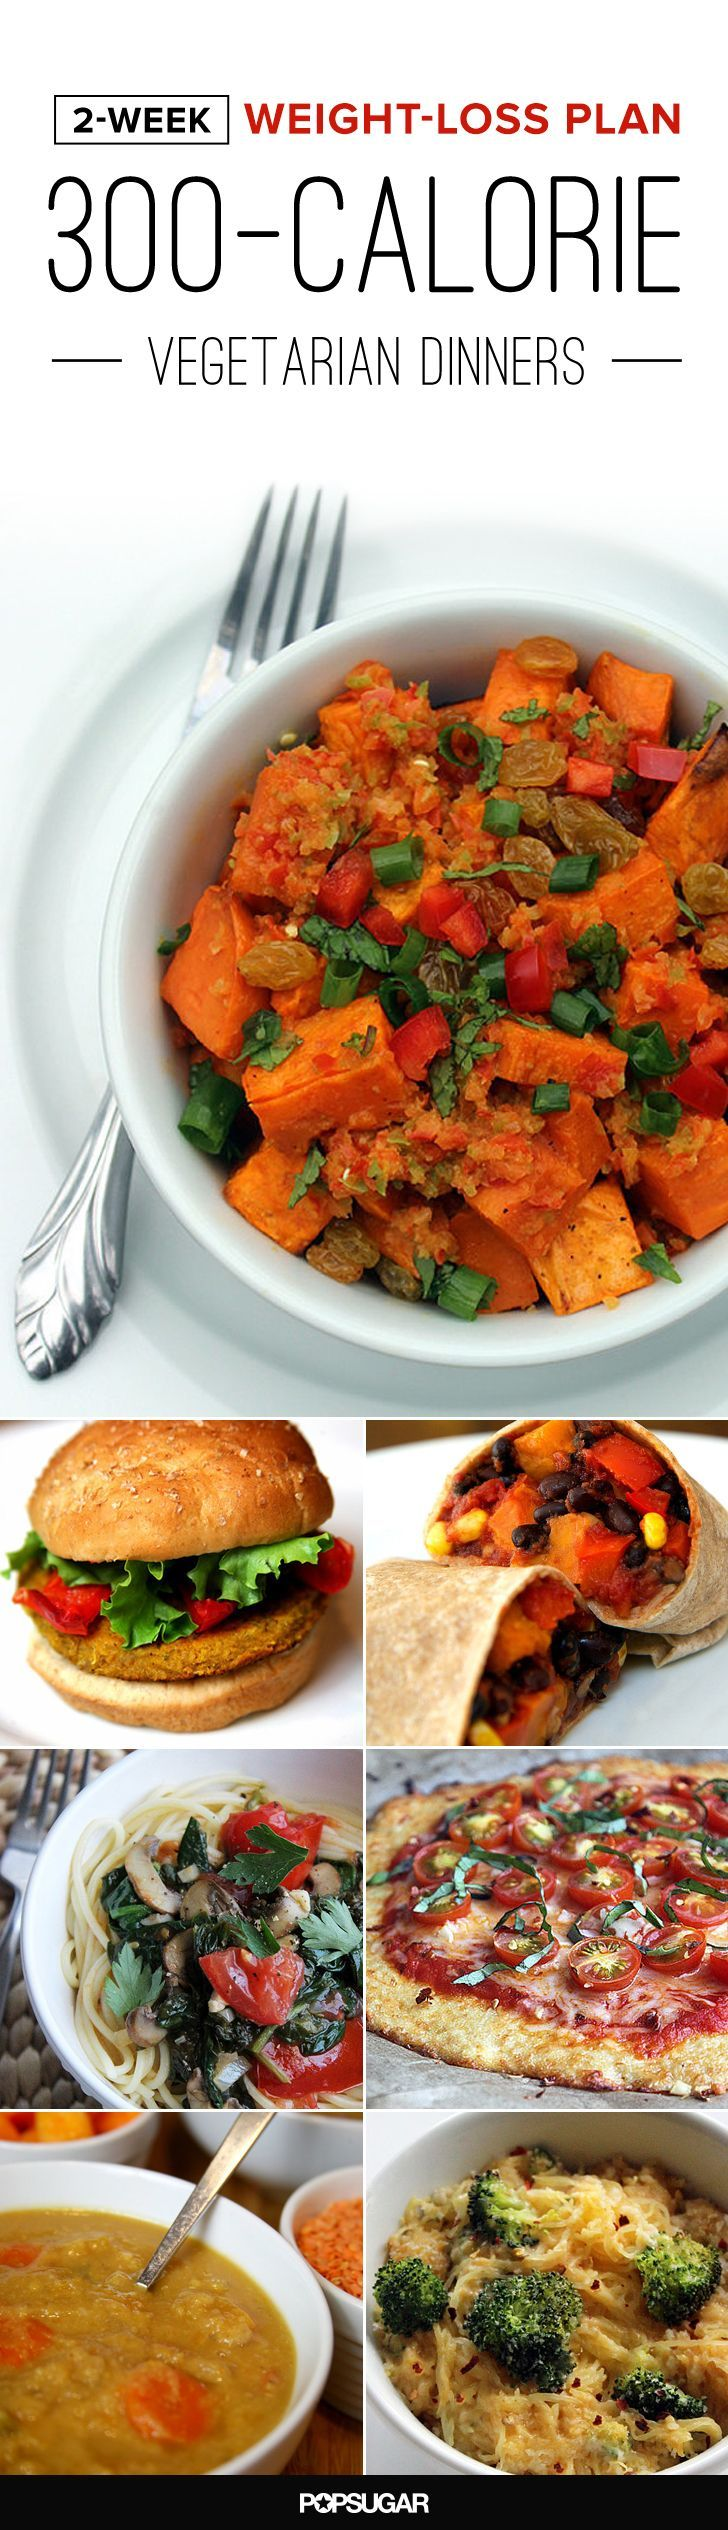 Lose weight in two weeks with this 14-day low-cal vegetarian dinner plan.